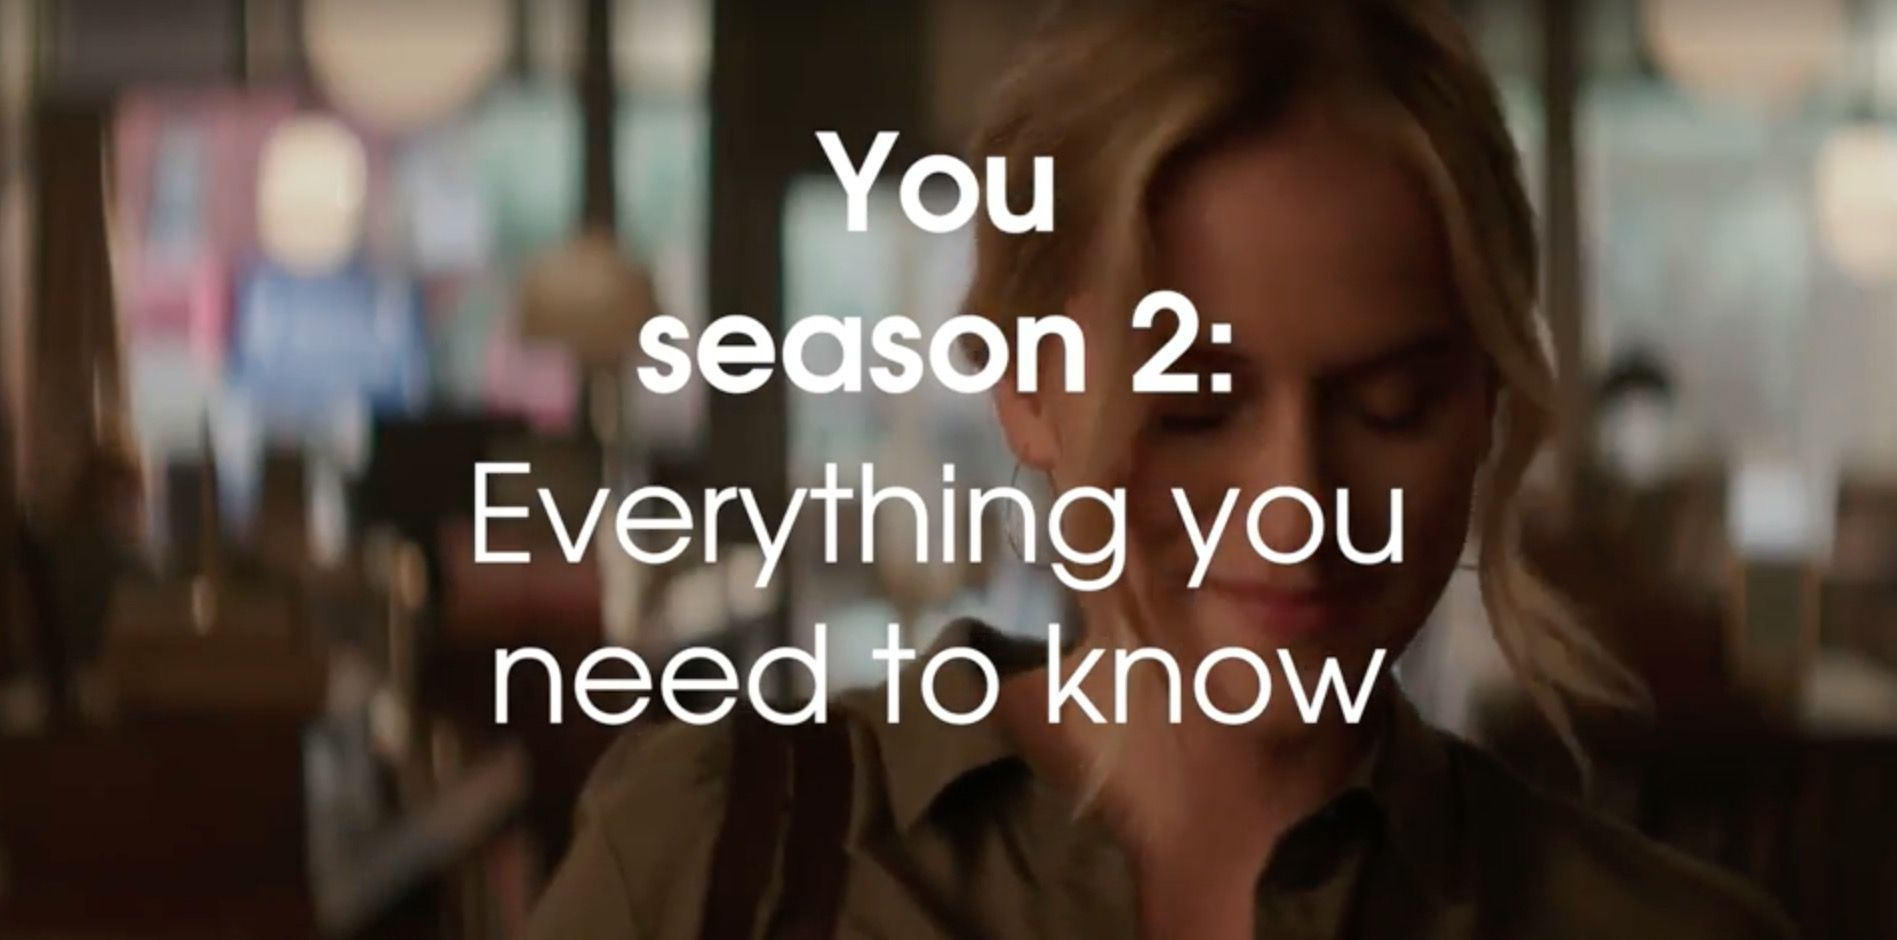 You season 2 on Netflix: Release date, cast, spoilers, premiere and everything you need to know